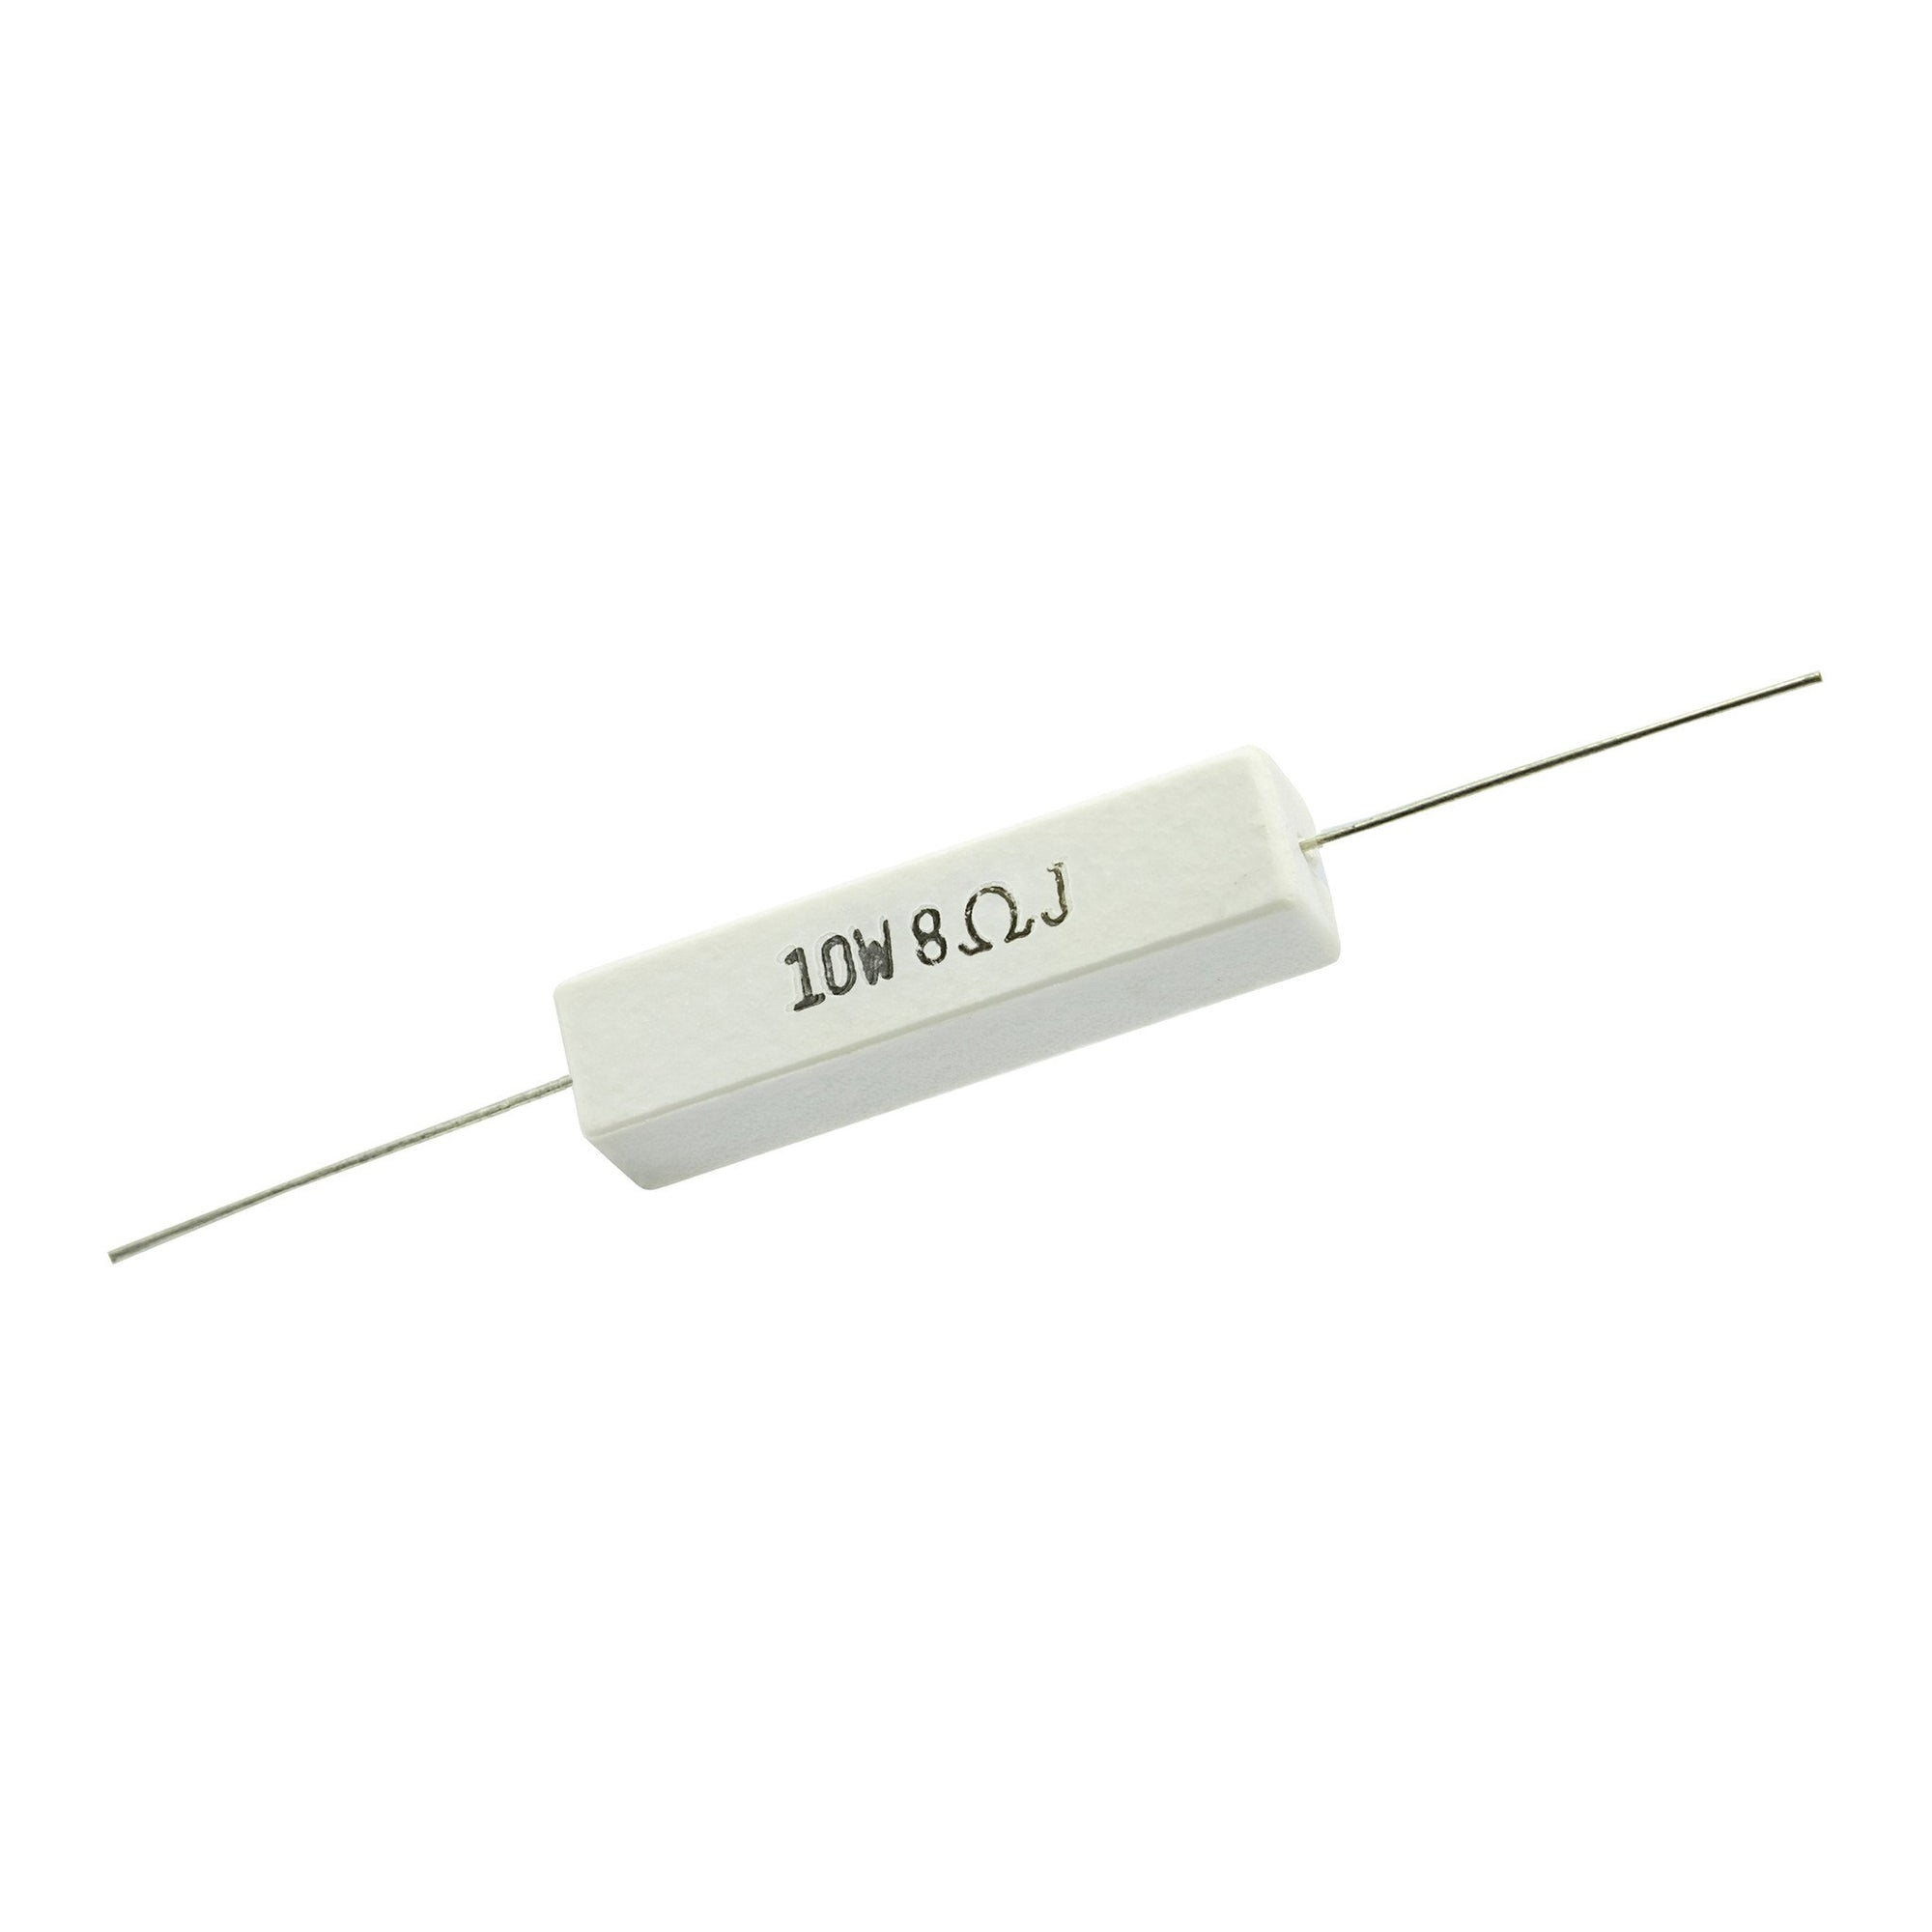 8 Ohm 10 Watt 5% Ceramic Wirewound Resistor - Willys-Hifi Ltd